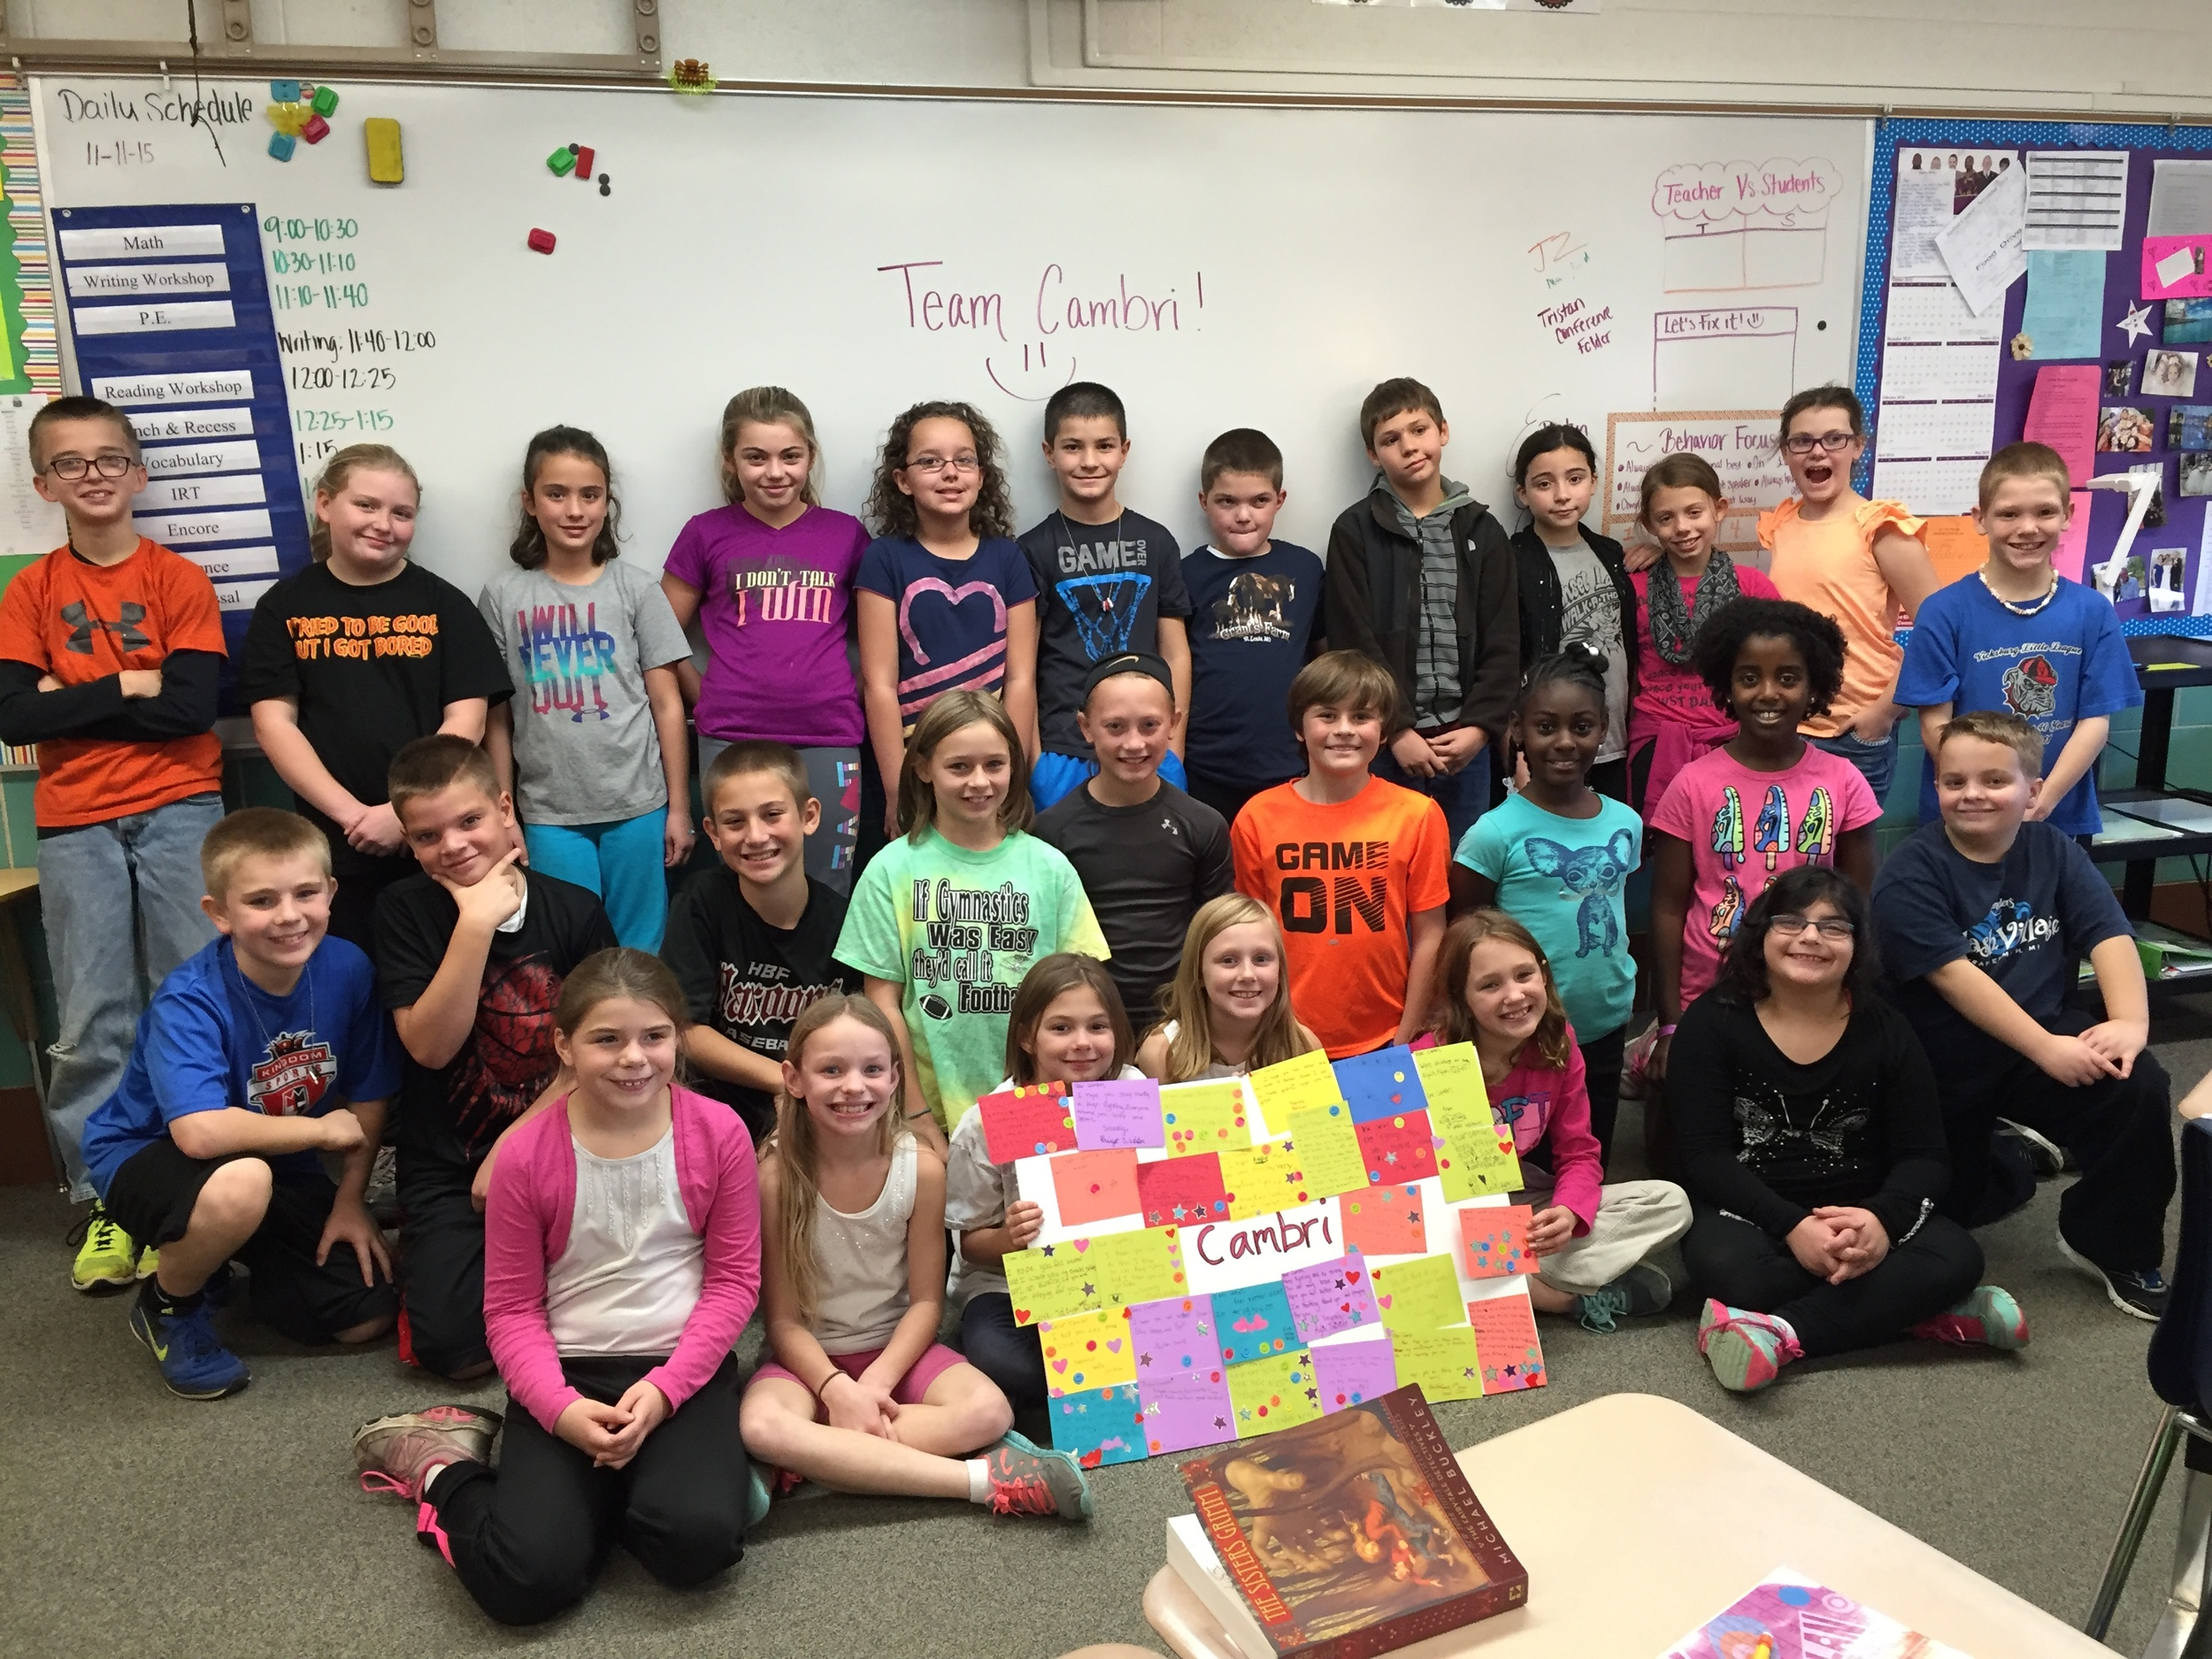 2015 - Students at Vicksburg Elementary make cards for children in the Pediatric Hospital, school bus drivers, janitors and school staff.